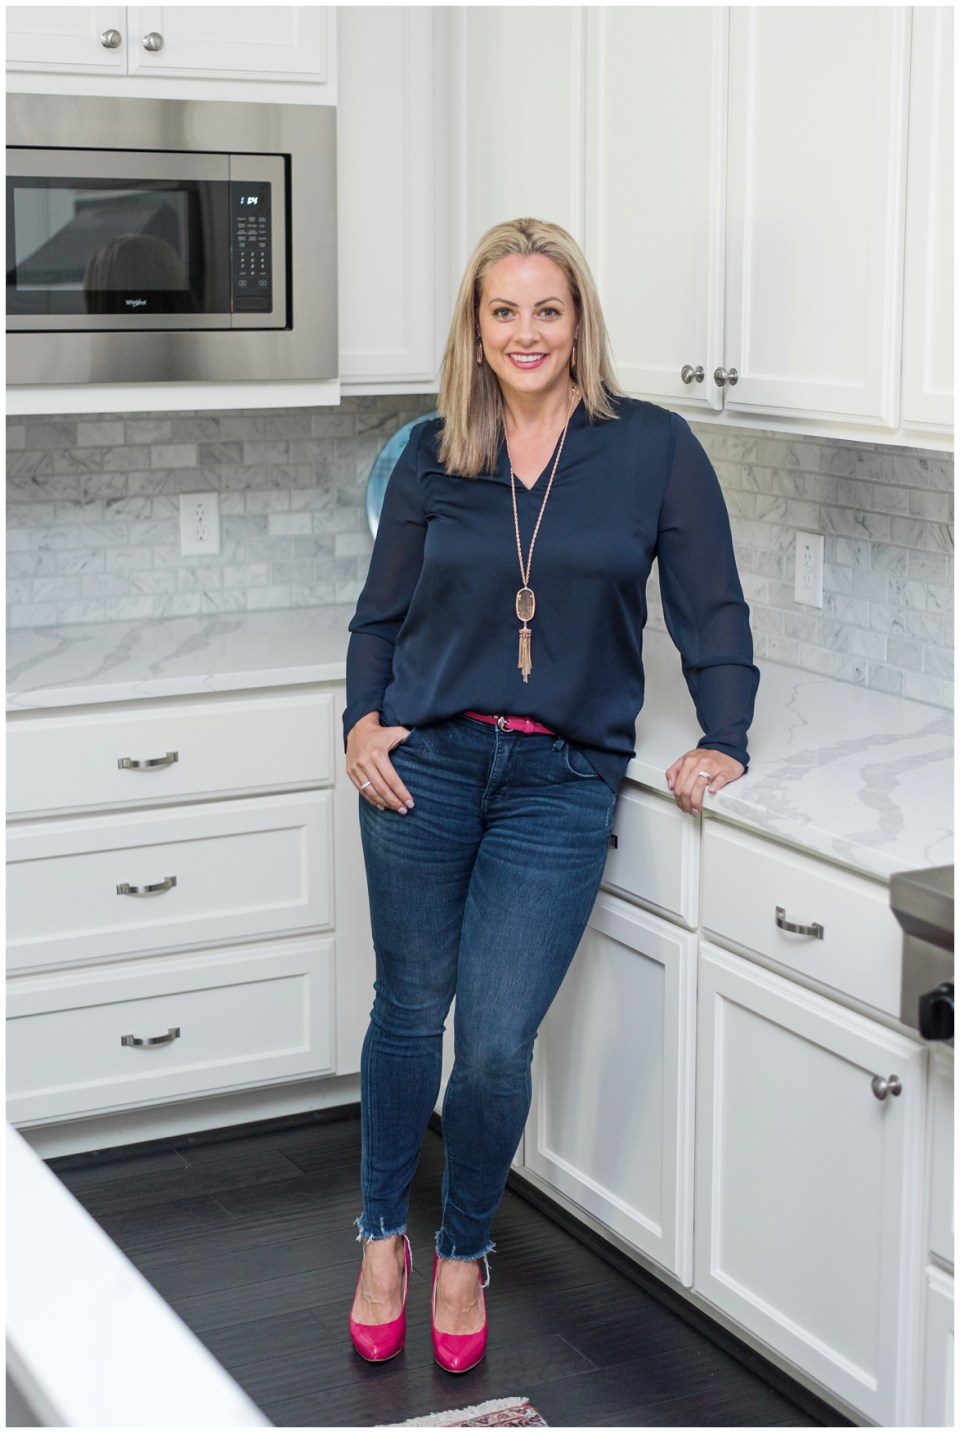 Houston Brand Photographer's session with professional organizer in kitchen